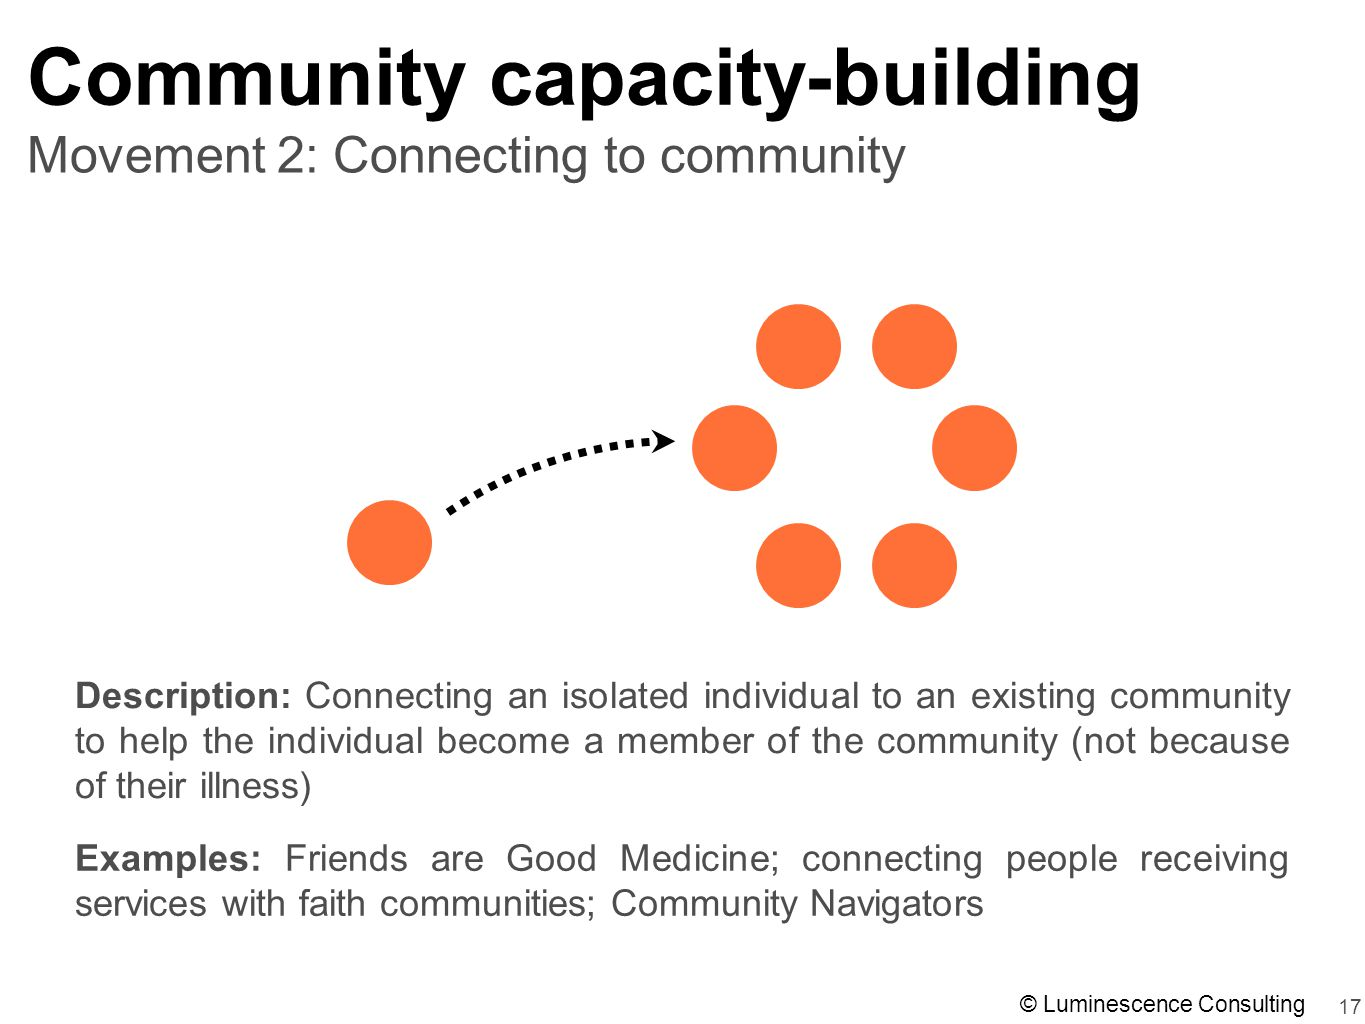 17 Movement 2: Connecting to community Community capacity-building Description: Connecting an isolated individual to an existing community to help the individual become a member of the community (not because of their illness) Examples: Friends are Good Medicine; connecting people receiving services with faith communities; Community Navigators © Luminescence Consulting